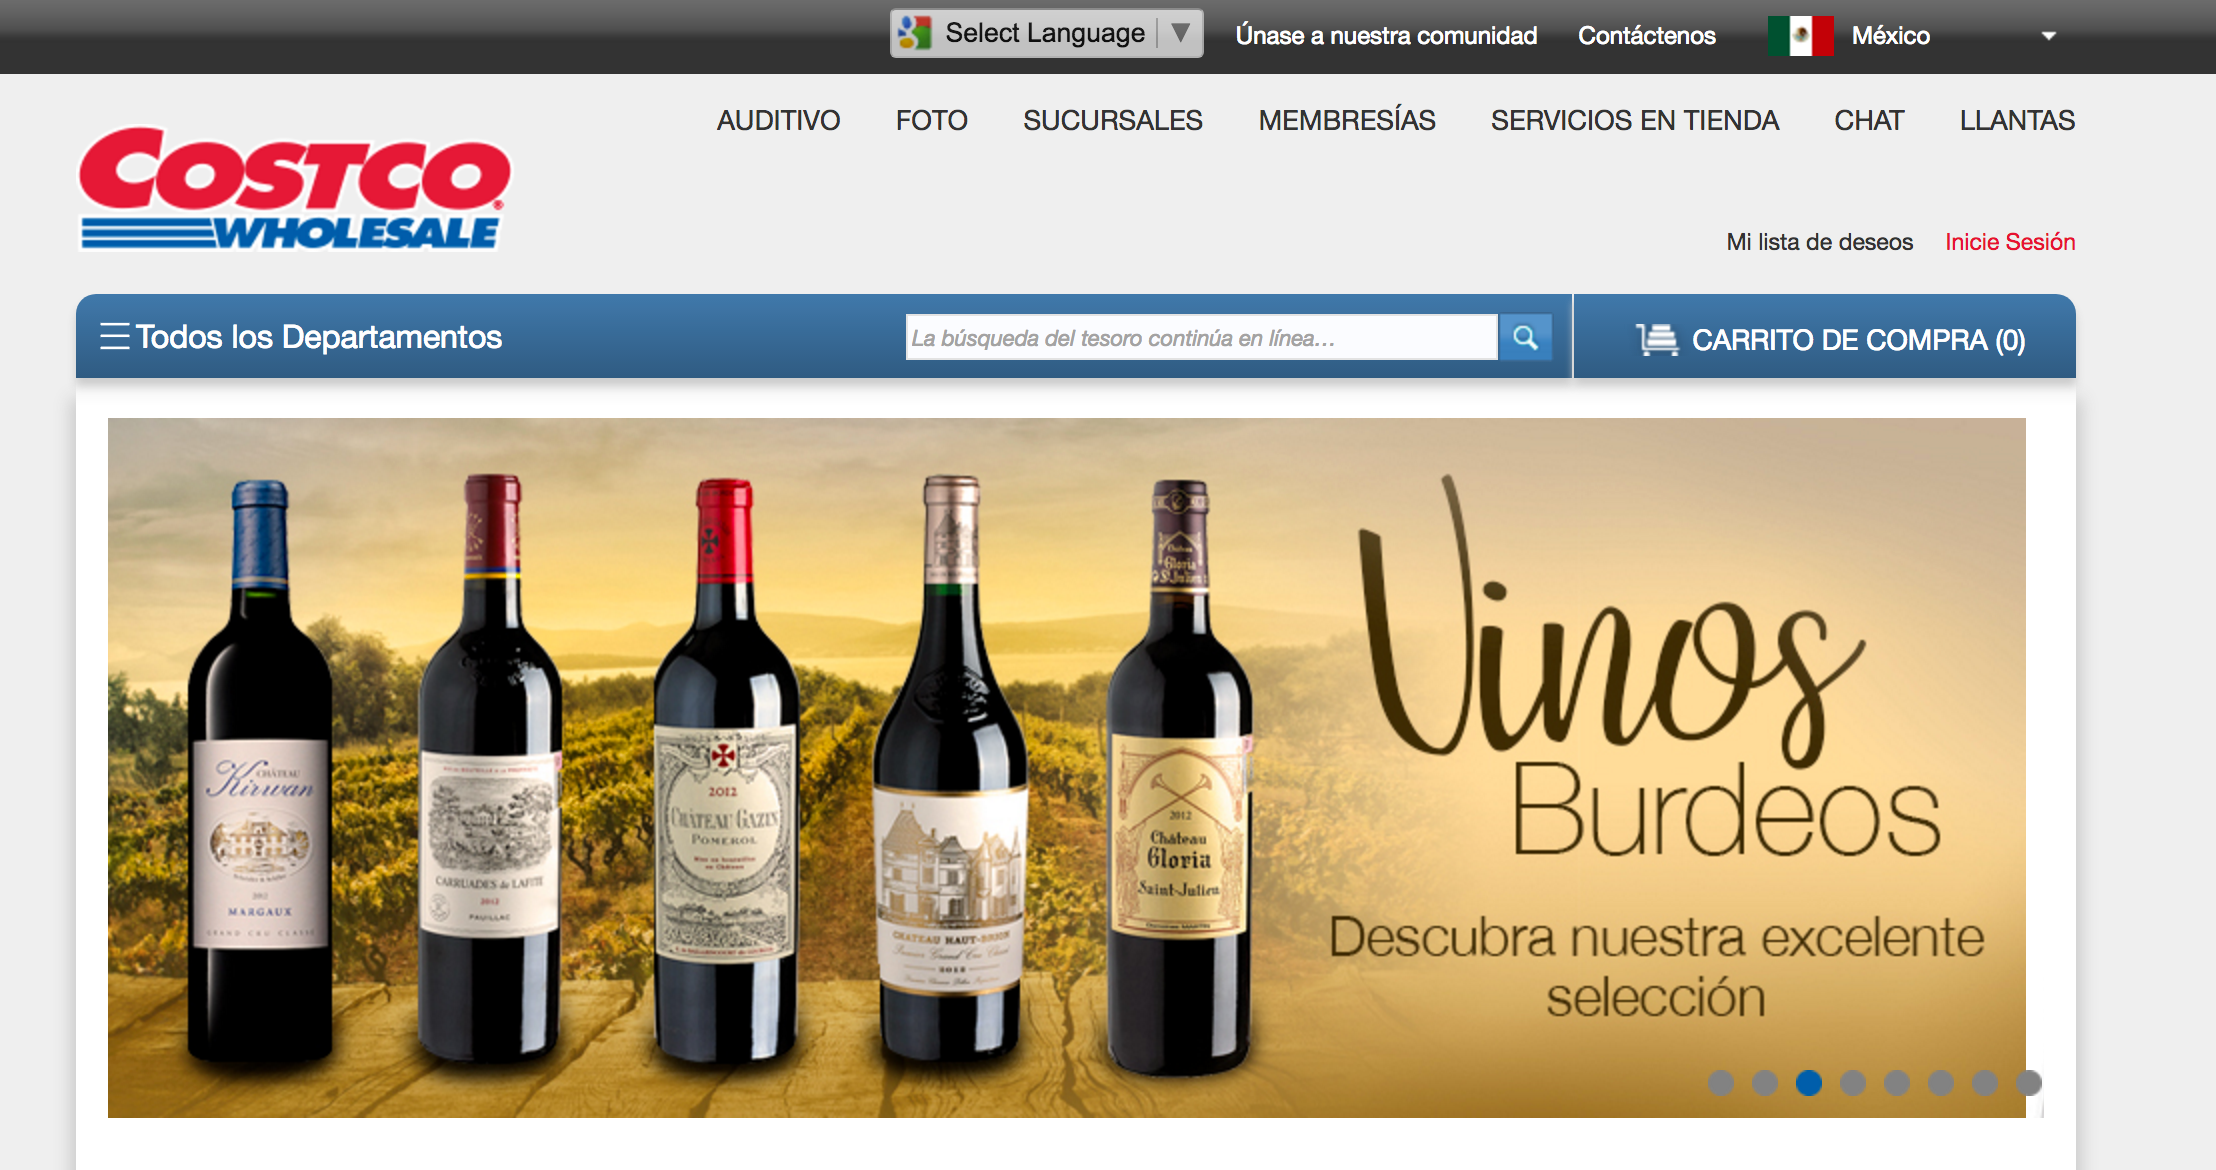 Costco's Mexico international website.